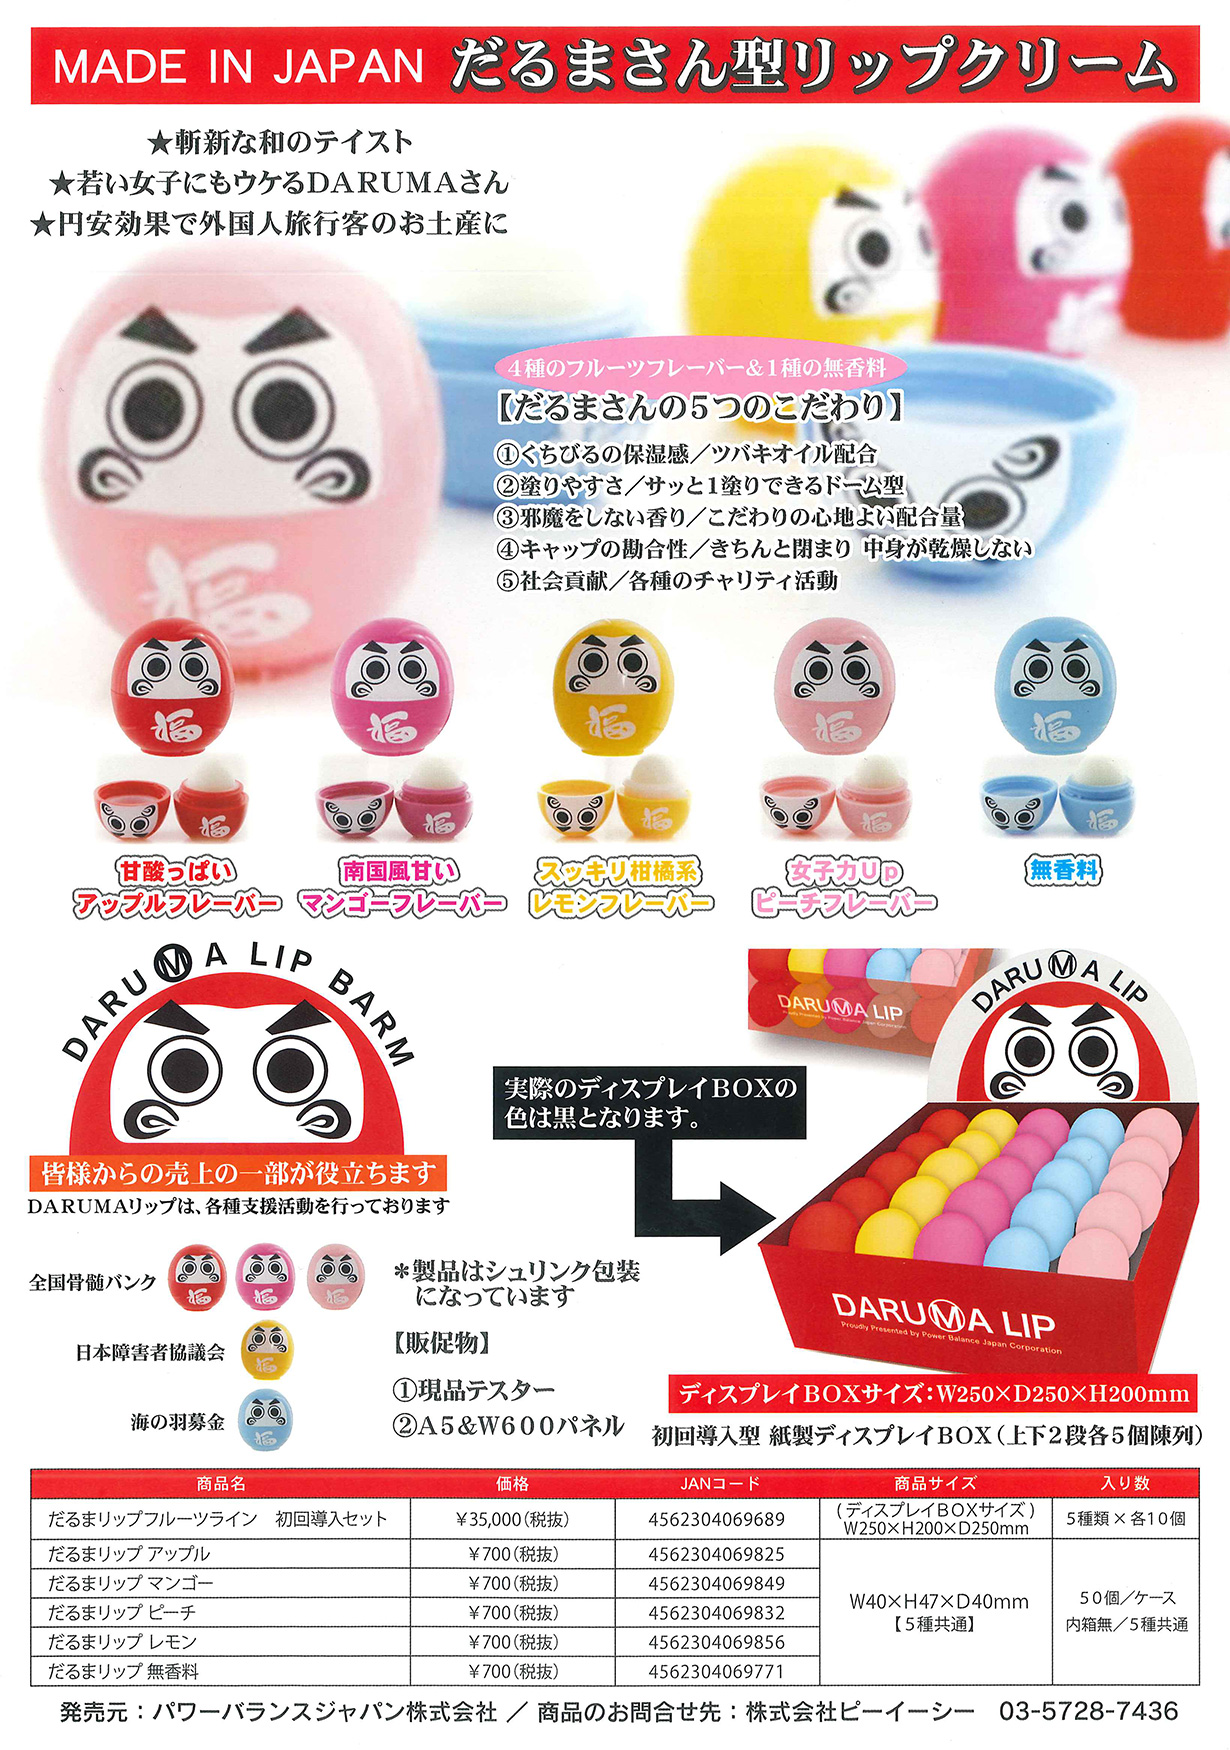 DARUMA LIP catalog (in Japanese)